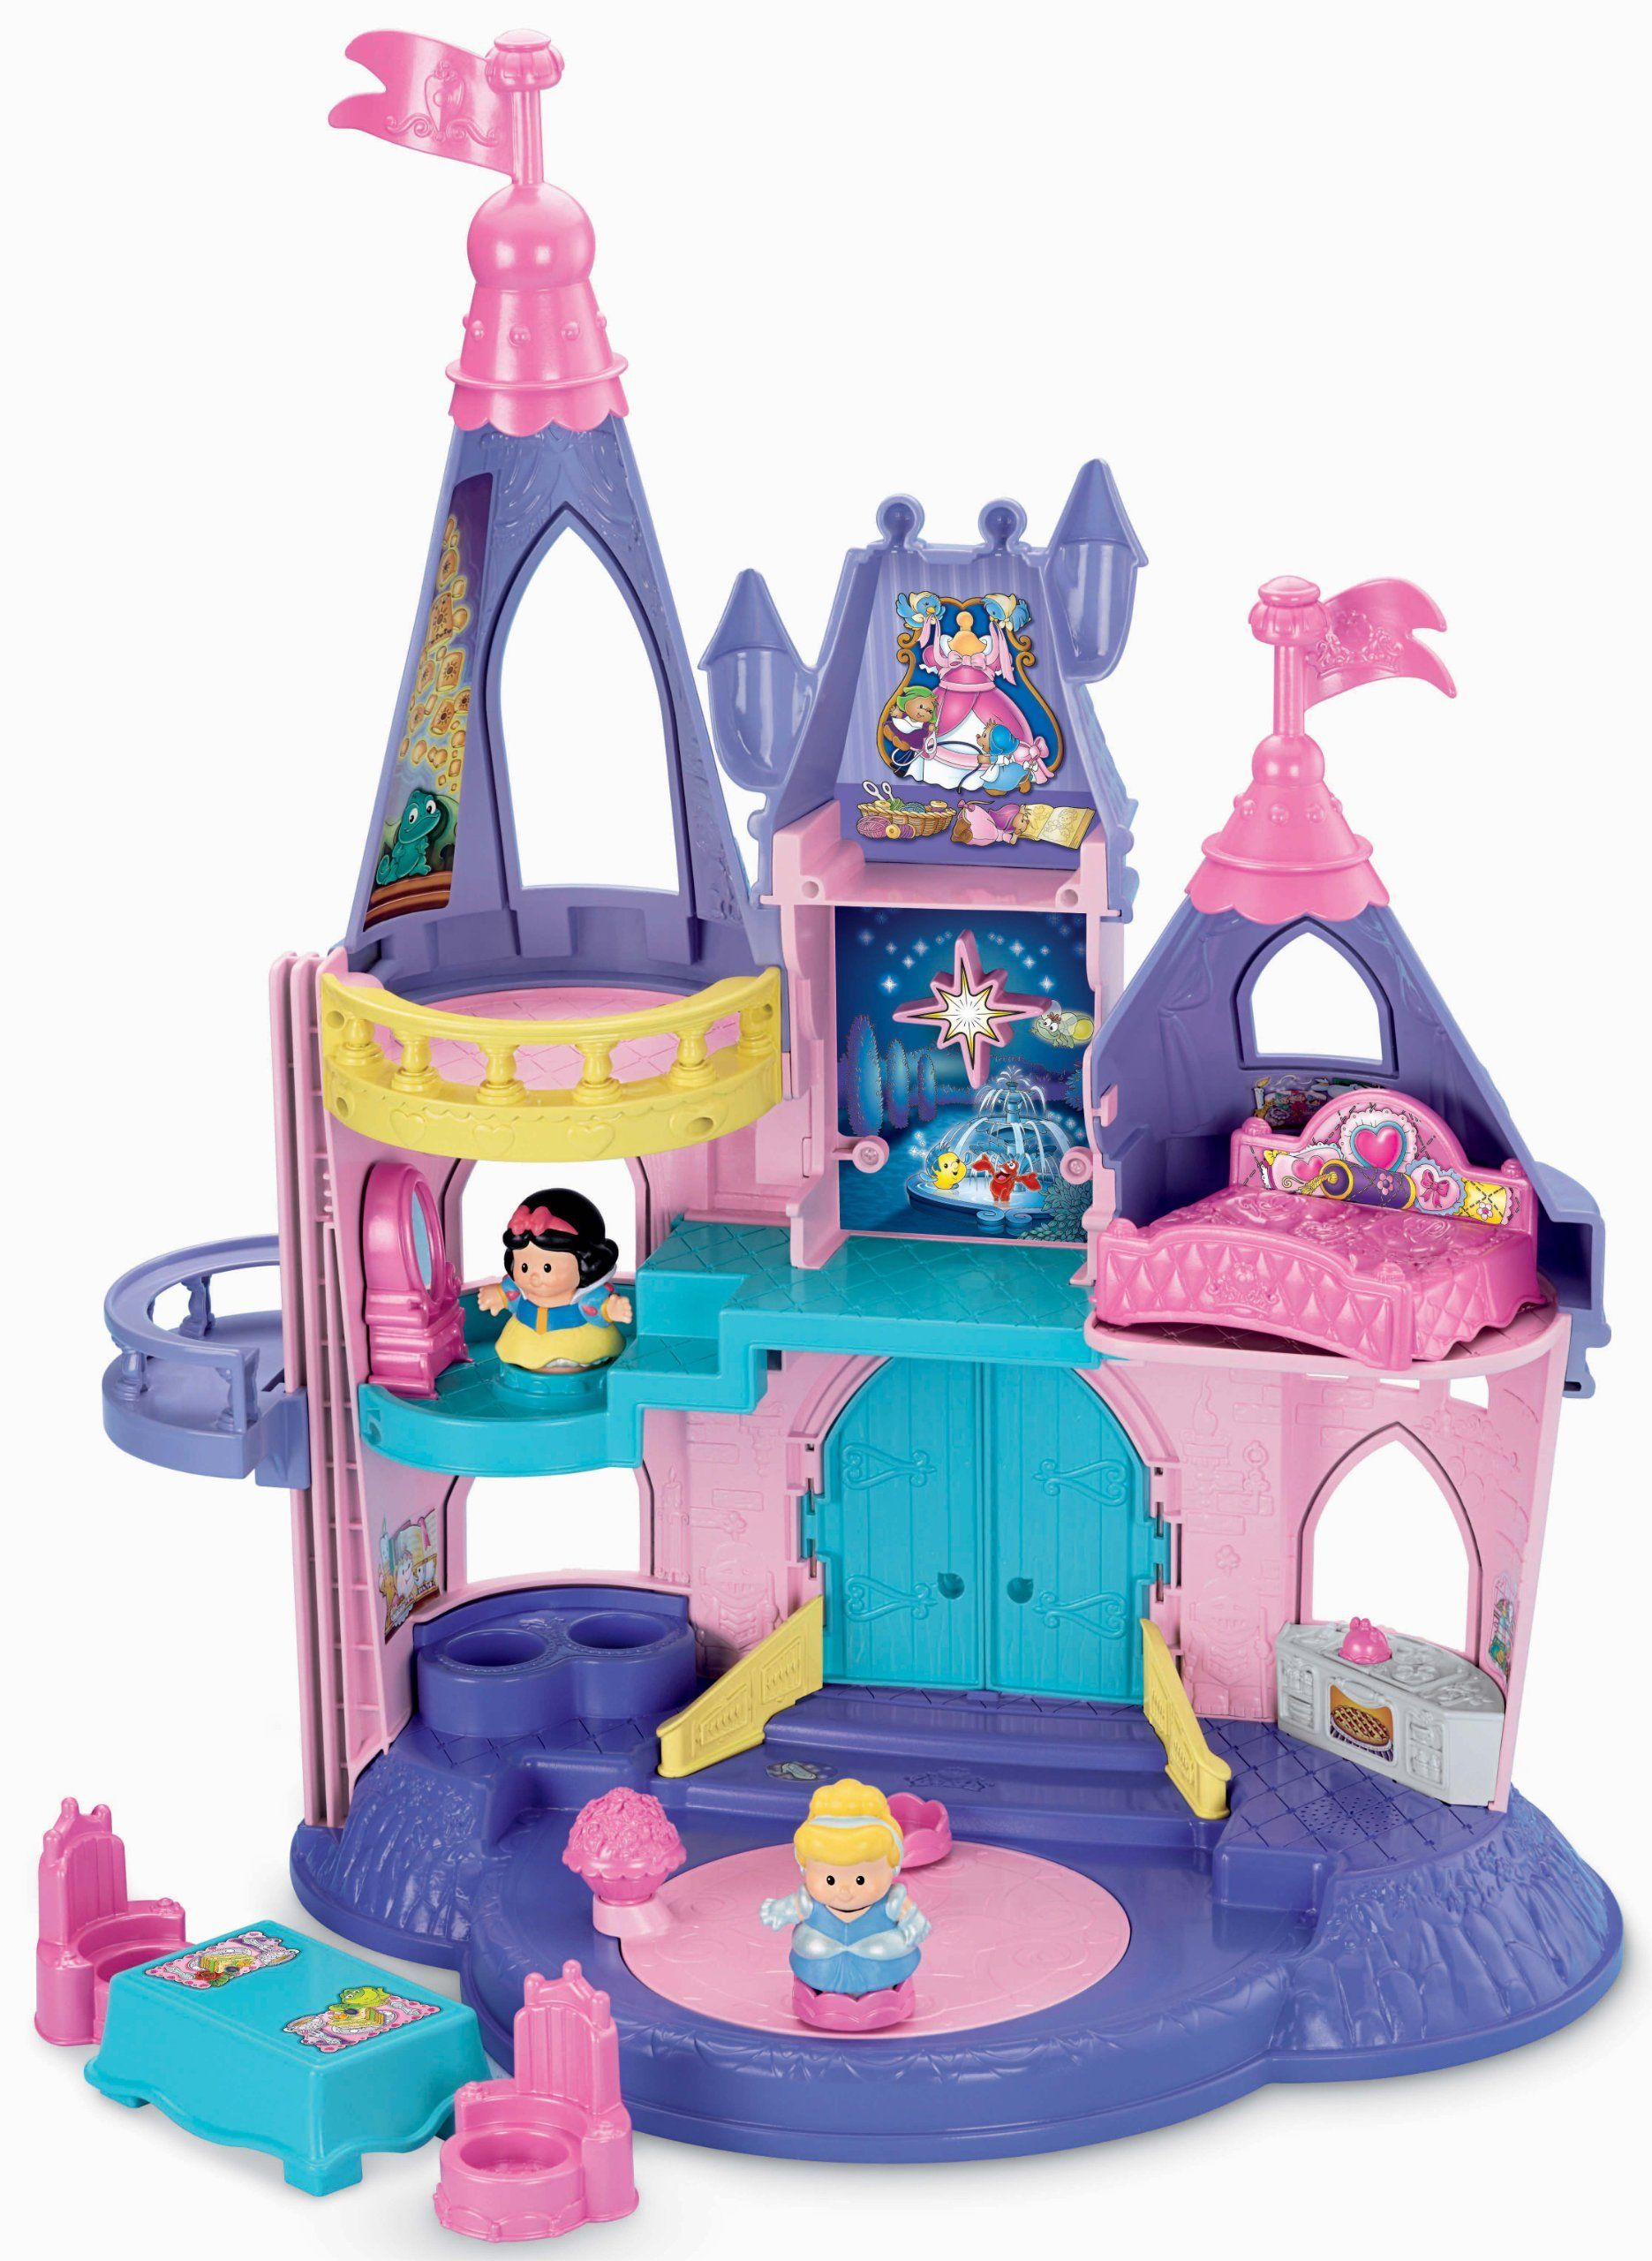 Best Toys For 1 Year Old Girls  1St Birthday  Toddler -4468